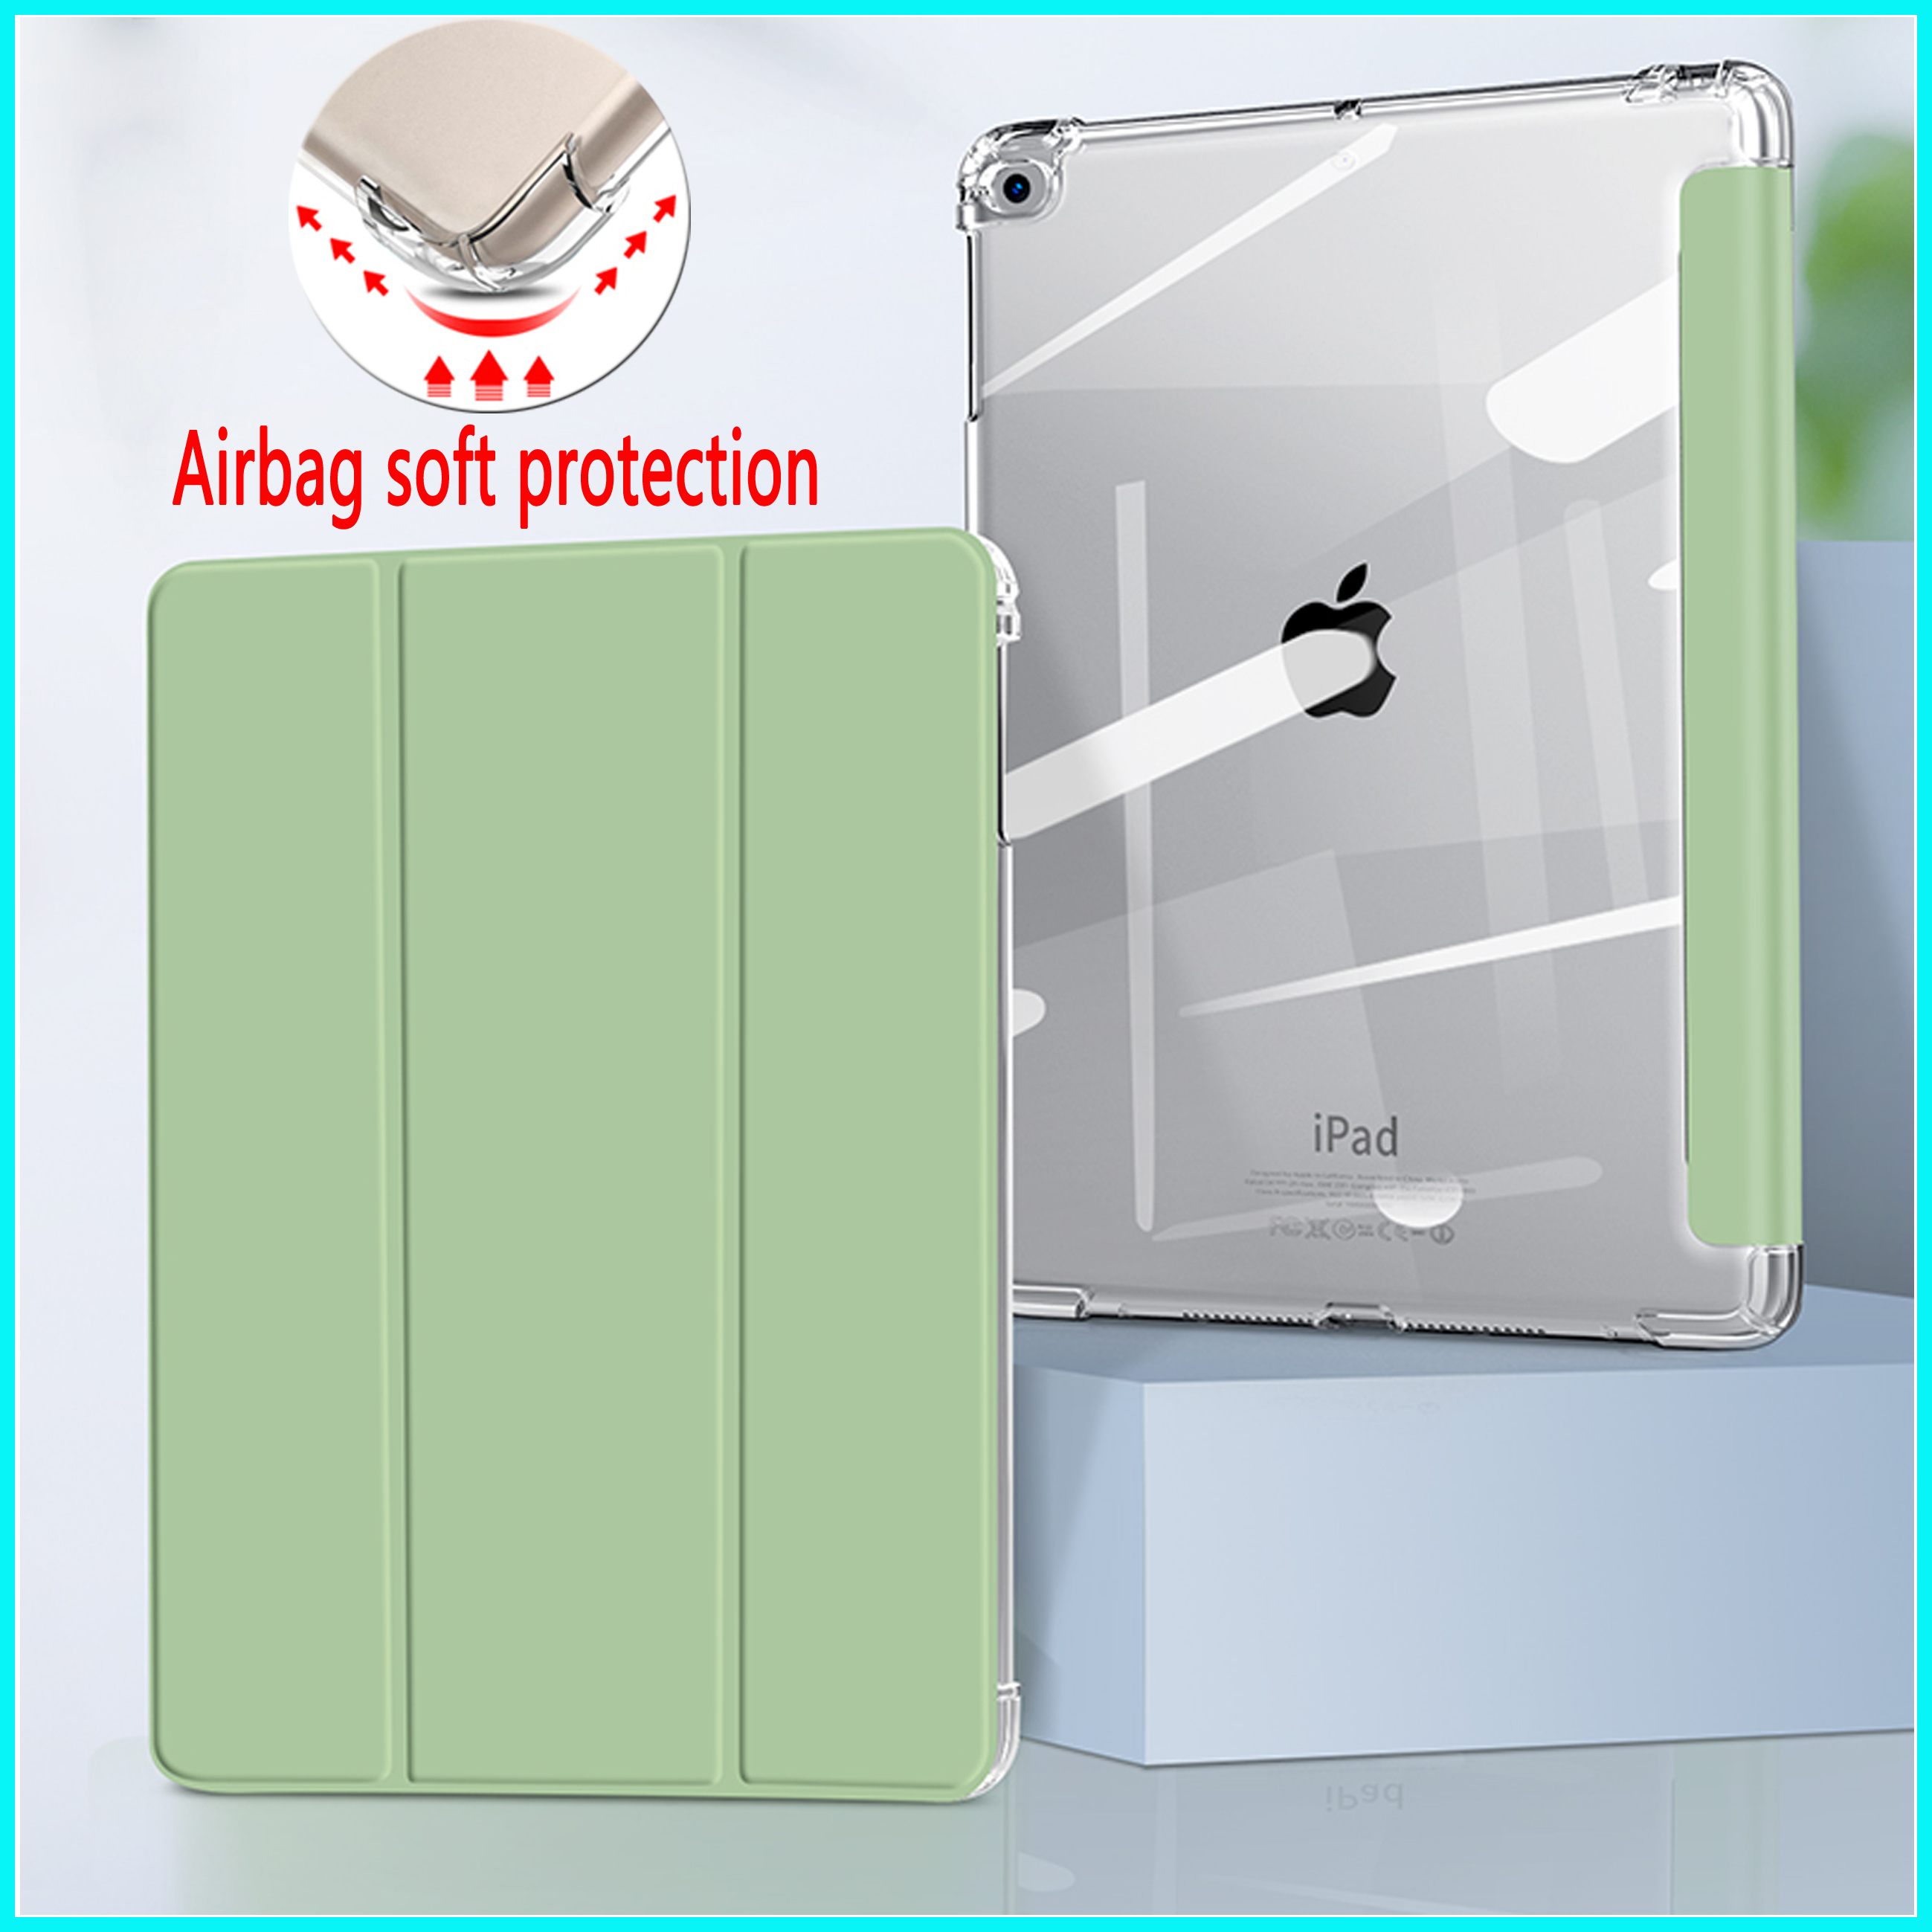 Airbag transparent soft protection Case For iPad New 2020 Air 4 10.9 inch Cover Case